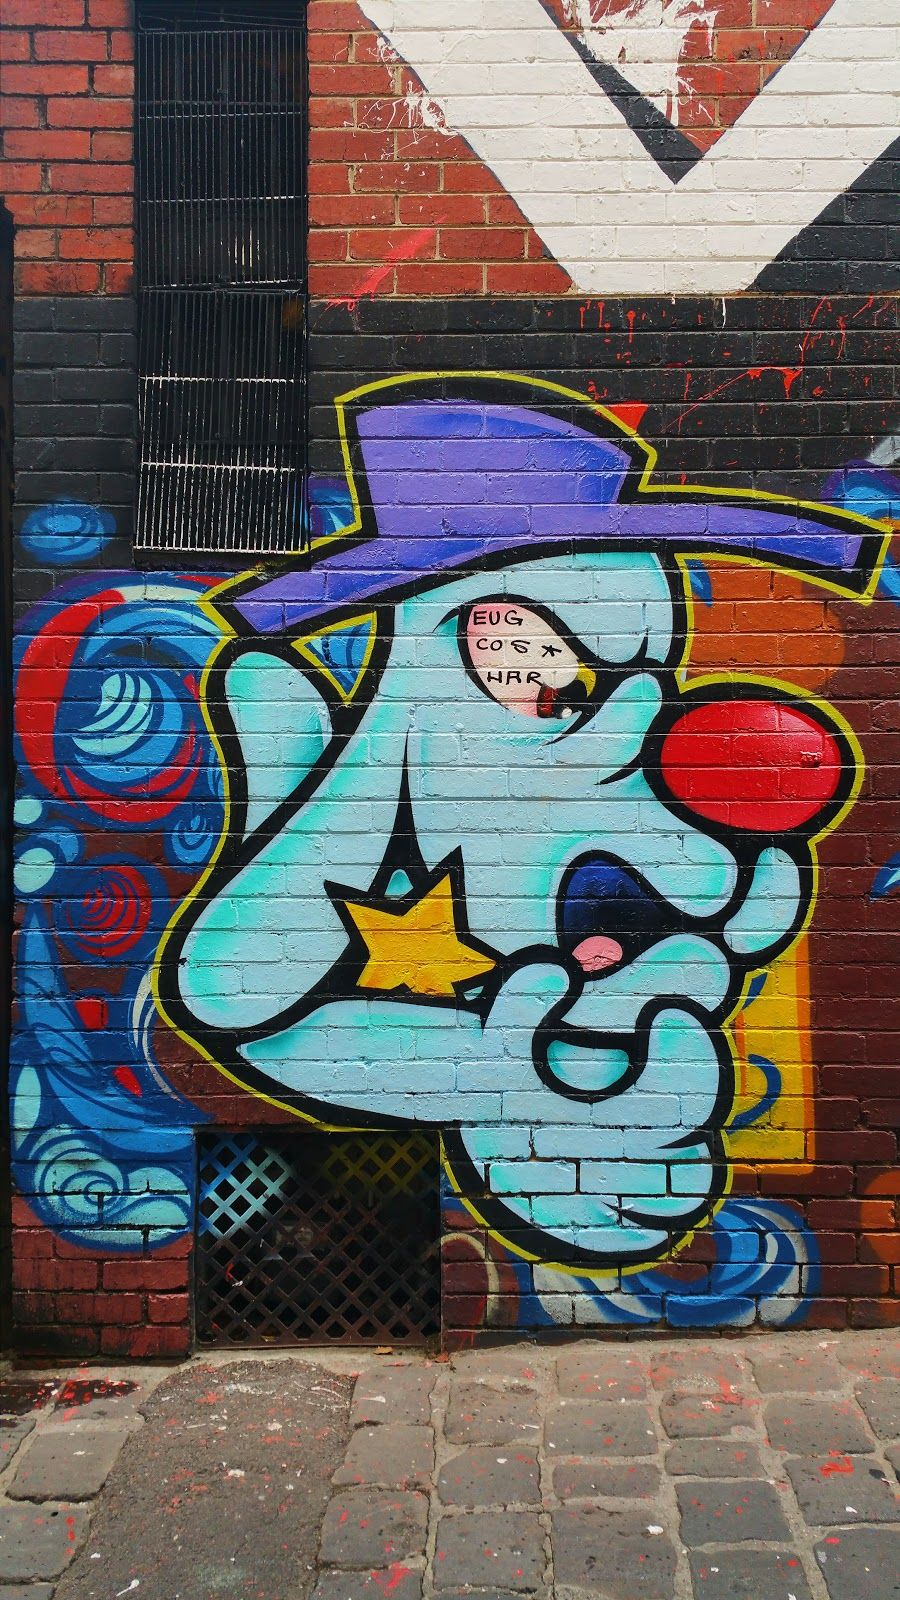 Melbourne graffiti art photo essay australia down under among many other things melbourne is also famous for being one of the worlds greatest street